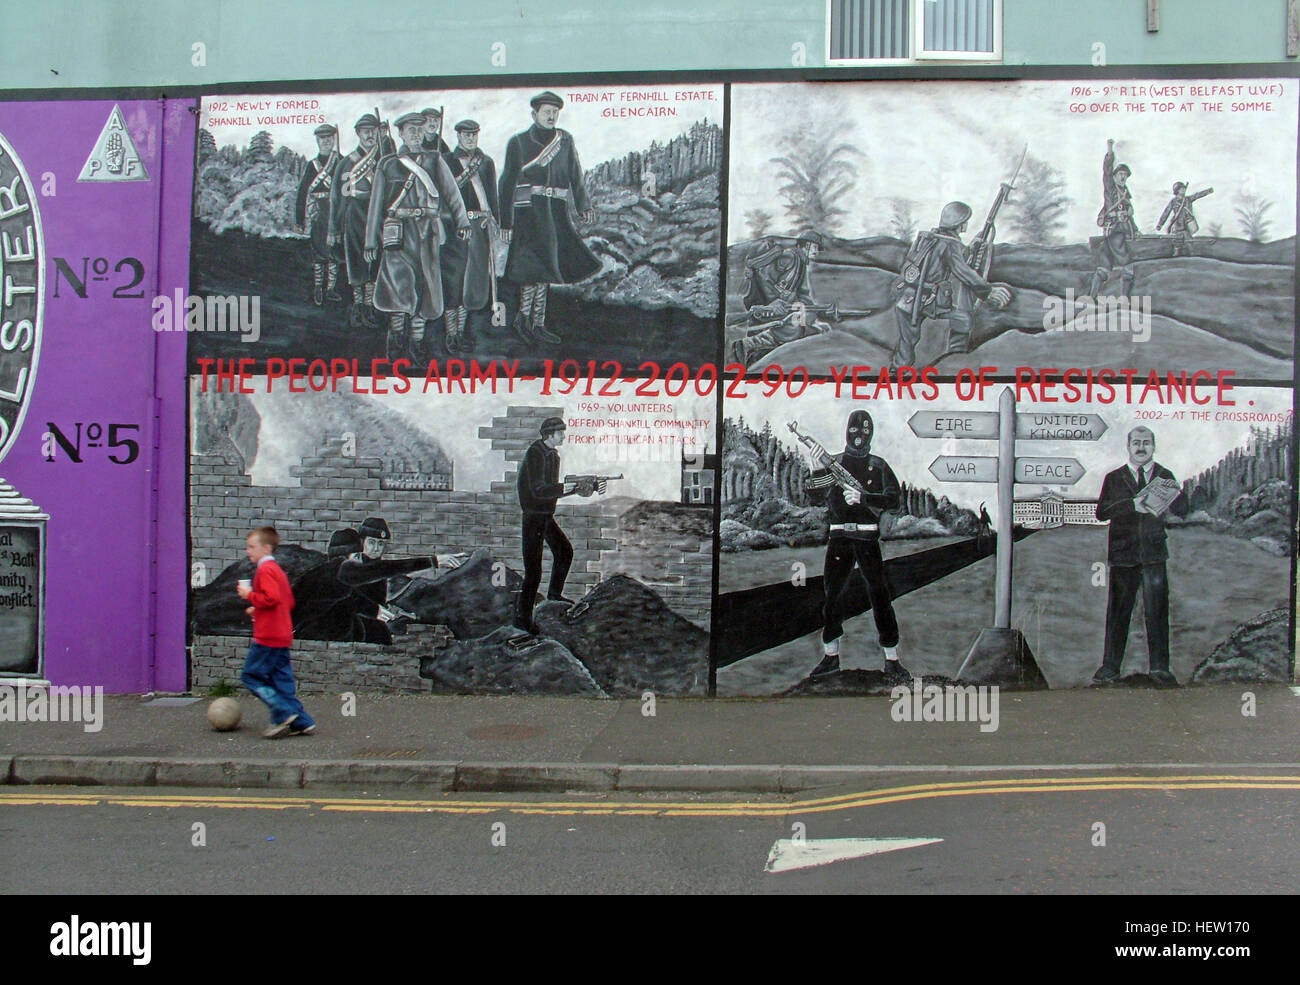 Unionist,British,Shankil,rd,painting,art,artist,martyr,fighter,para,paramilitary,soldier,wall,gable,end,gable end,community,protestant,Shankill Road Mural,West,West Belfast,NI,Northern Ireland,90 years of resistance,ninety,boy,football,ball,kick,kicking,child,children,streets of Belfast,GoTonySmith,@HotpixUK,Tony,Smith,UK,GB,Great,Britain,United,Kingdom,Irish,British,Ireland,problem,with,problem with,issue with,NI,Northern,Northern Ireland,Belfast,City,Centre,Art,Artists,the,troubles,The Troubles,Good Friday Agreement,Peace,honour,painting,wall,walls,tribute,unionism,Fight,Justice,West,Beal,feirste,martyrs,social,tour,tourism,tourists,urban,six,counties,6,backdrop,county,Antrim,DUP,democratic Unionist,red hand,of Ulster,Red Hand Of Ulster,Shankill,Rd,road,Shankill Road,streets of Belfast,Buy Pictures of,Buy Images Of,Images of,Stock Images,Tony Smith,United Kingdom,Great Britain,British Isles,Irish History,Ireland History,Northern Ireland History